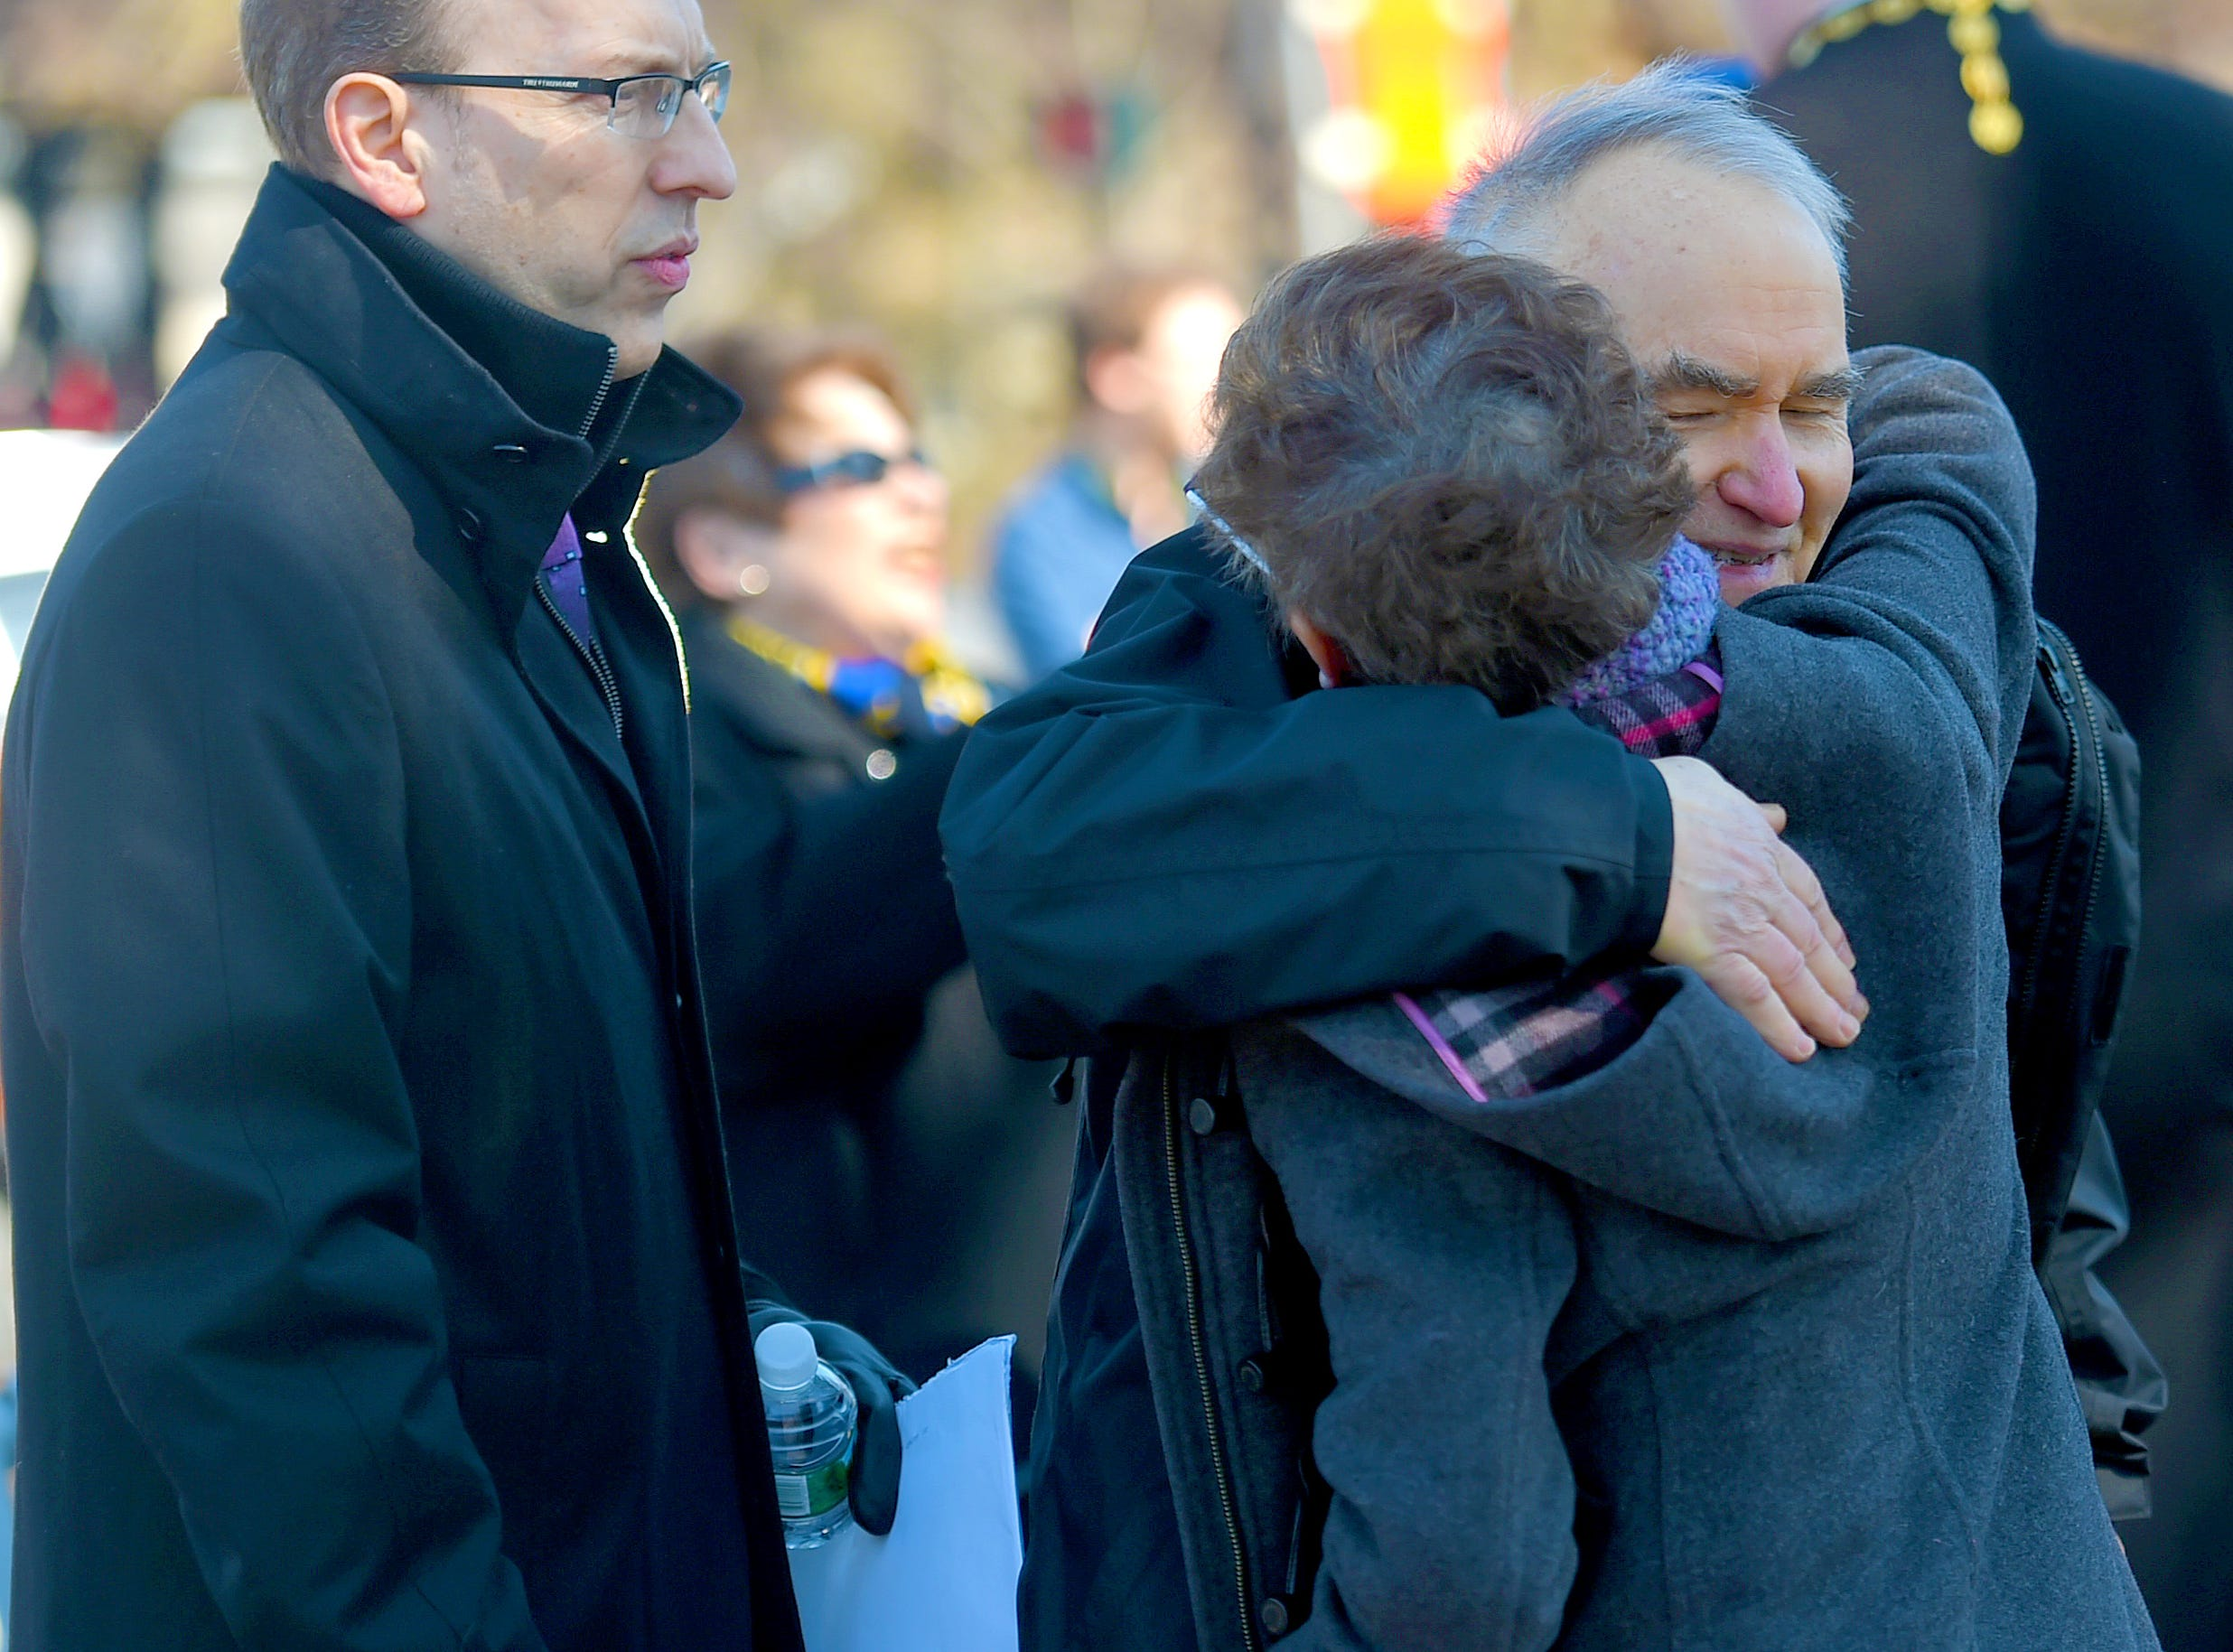 The families of victims Roberta King and Maria Zobniw greet each other before the morning gathering to honor  the 13 victims of the 2009 mass shooting at the American Civic Association in Binghamton.  April 3, 2019.